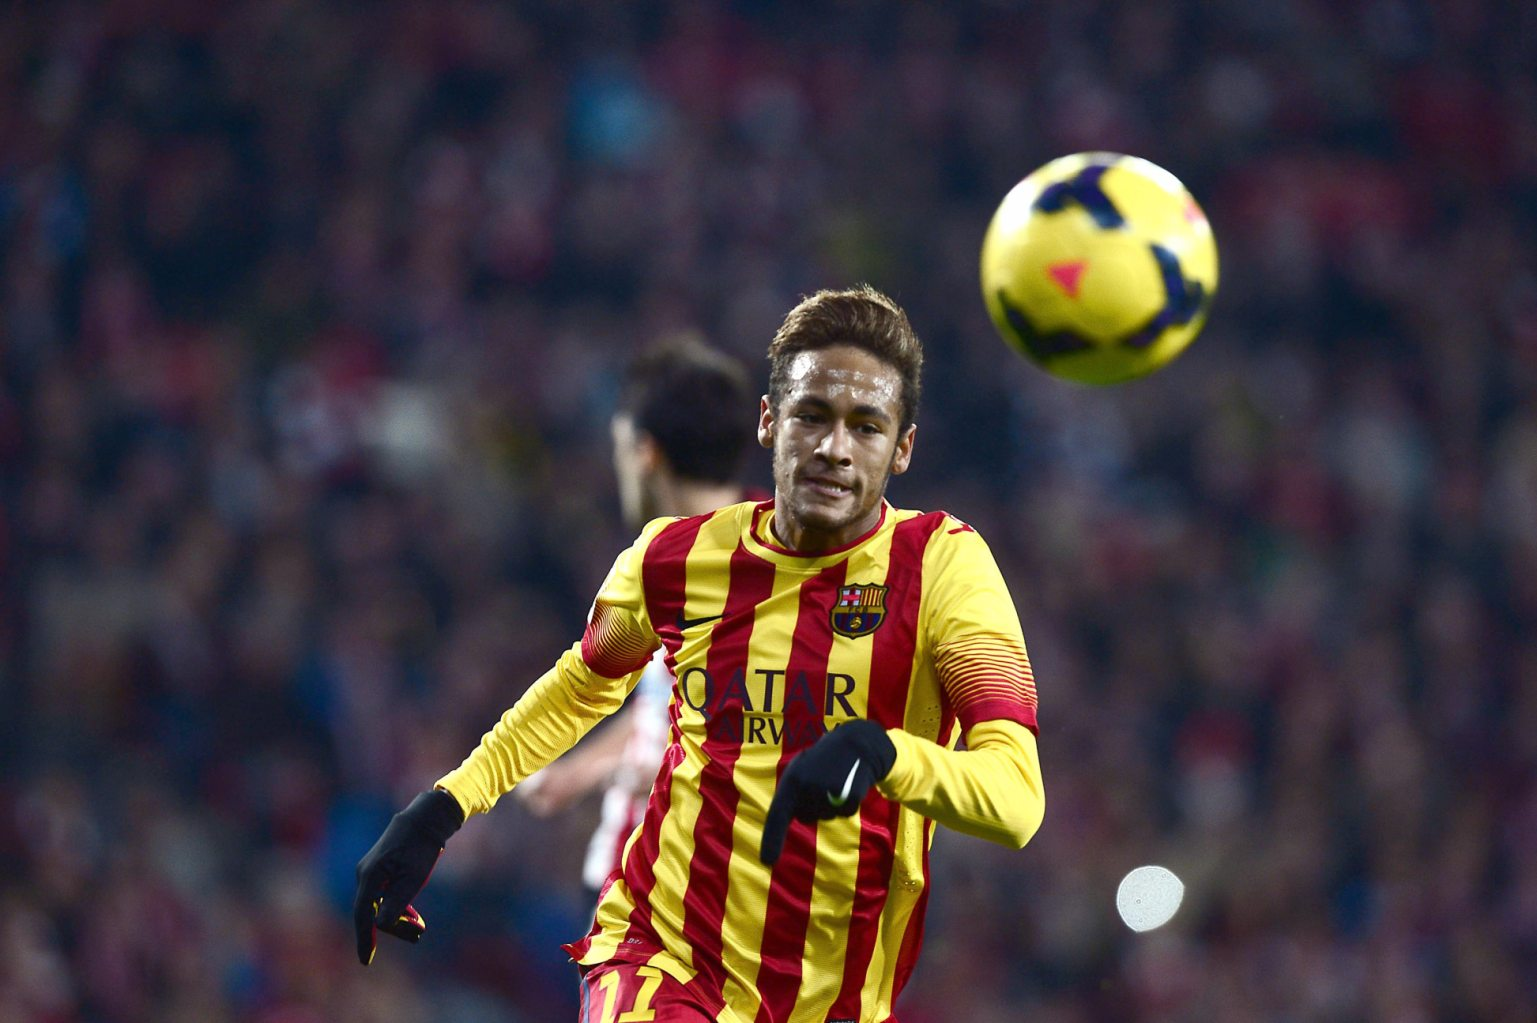 Neymar chasing the ball in a Barcelona red and yellow stripes jersey